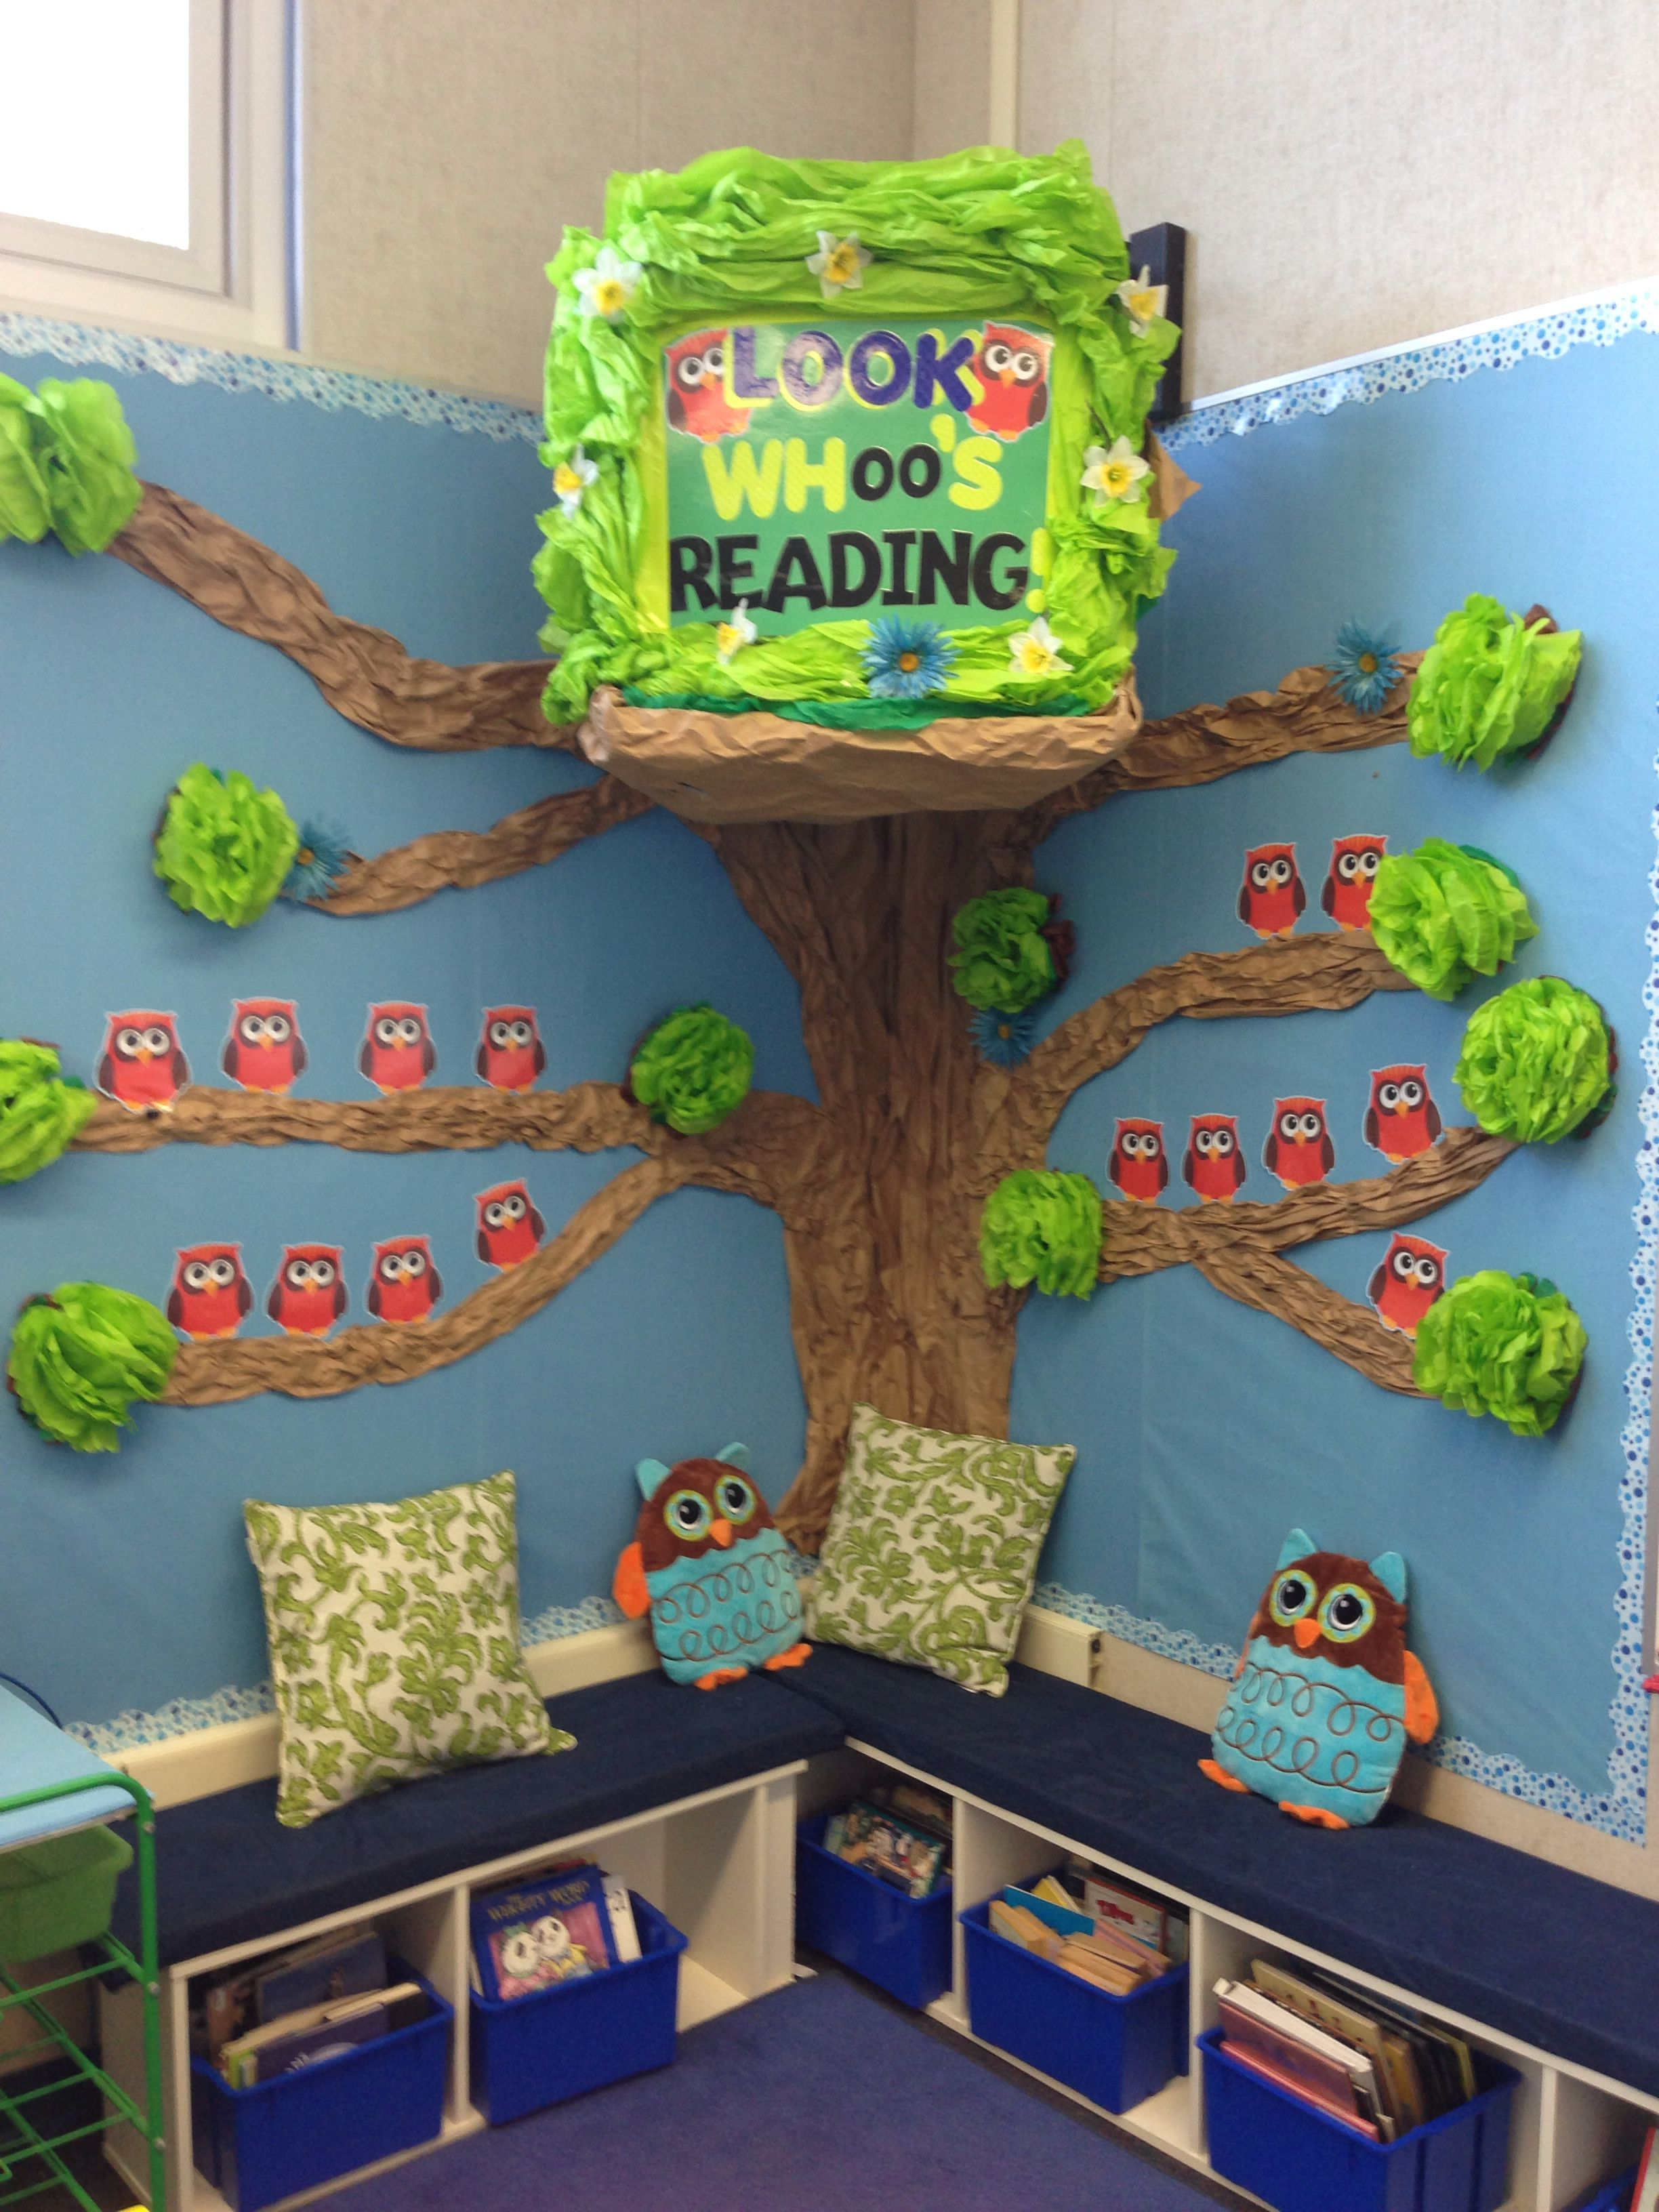 An inviting reading area isn't essential, but it sure is engaging